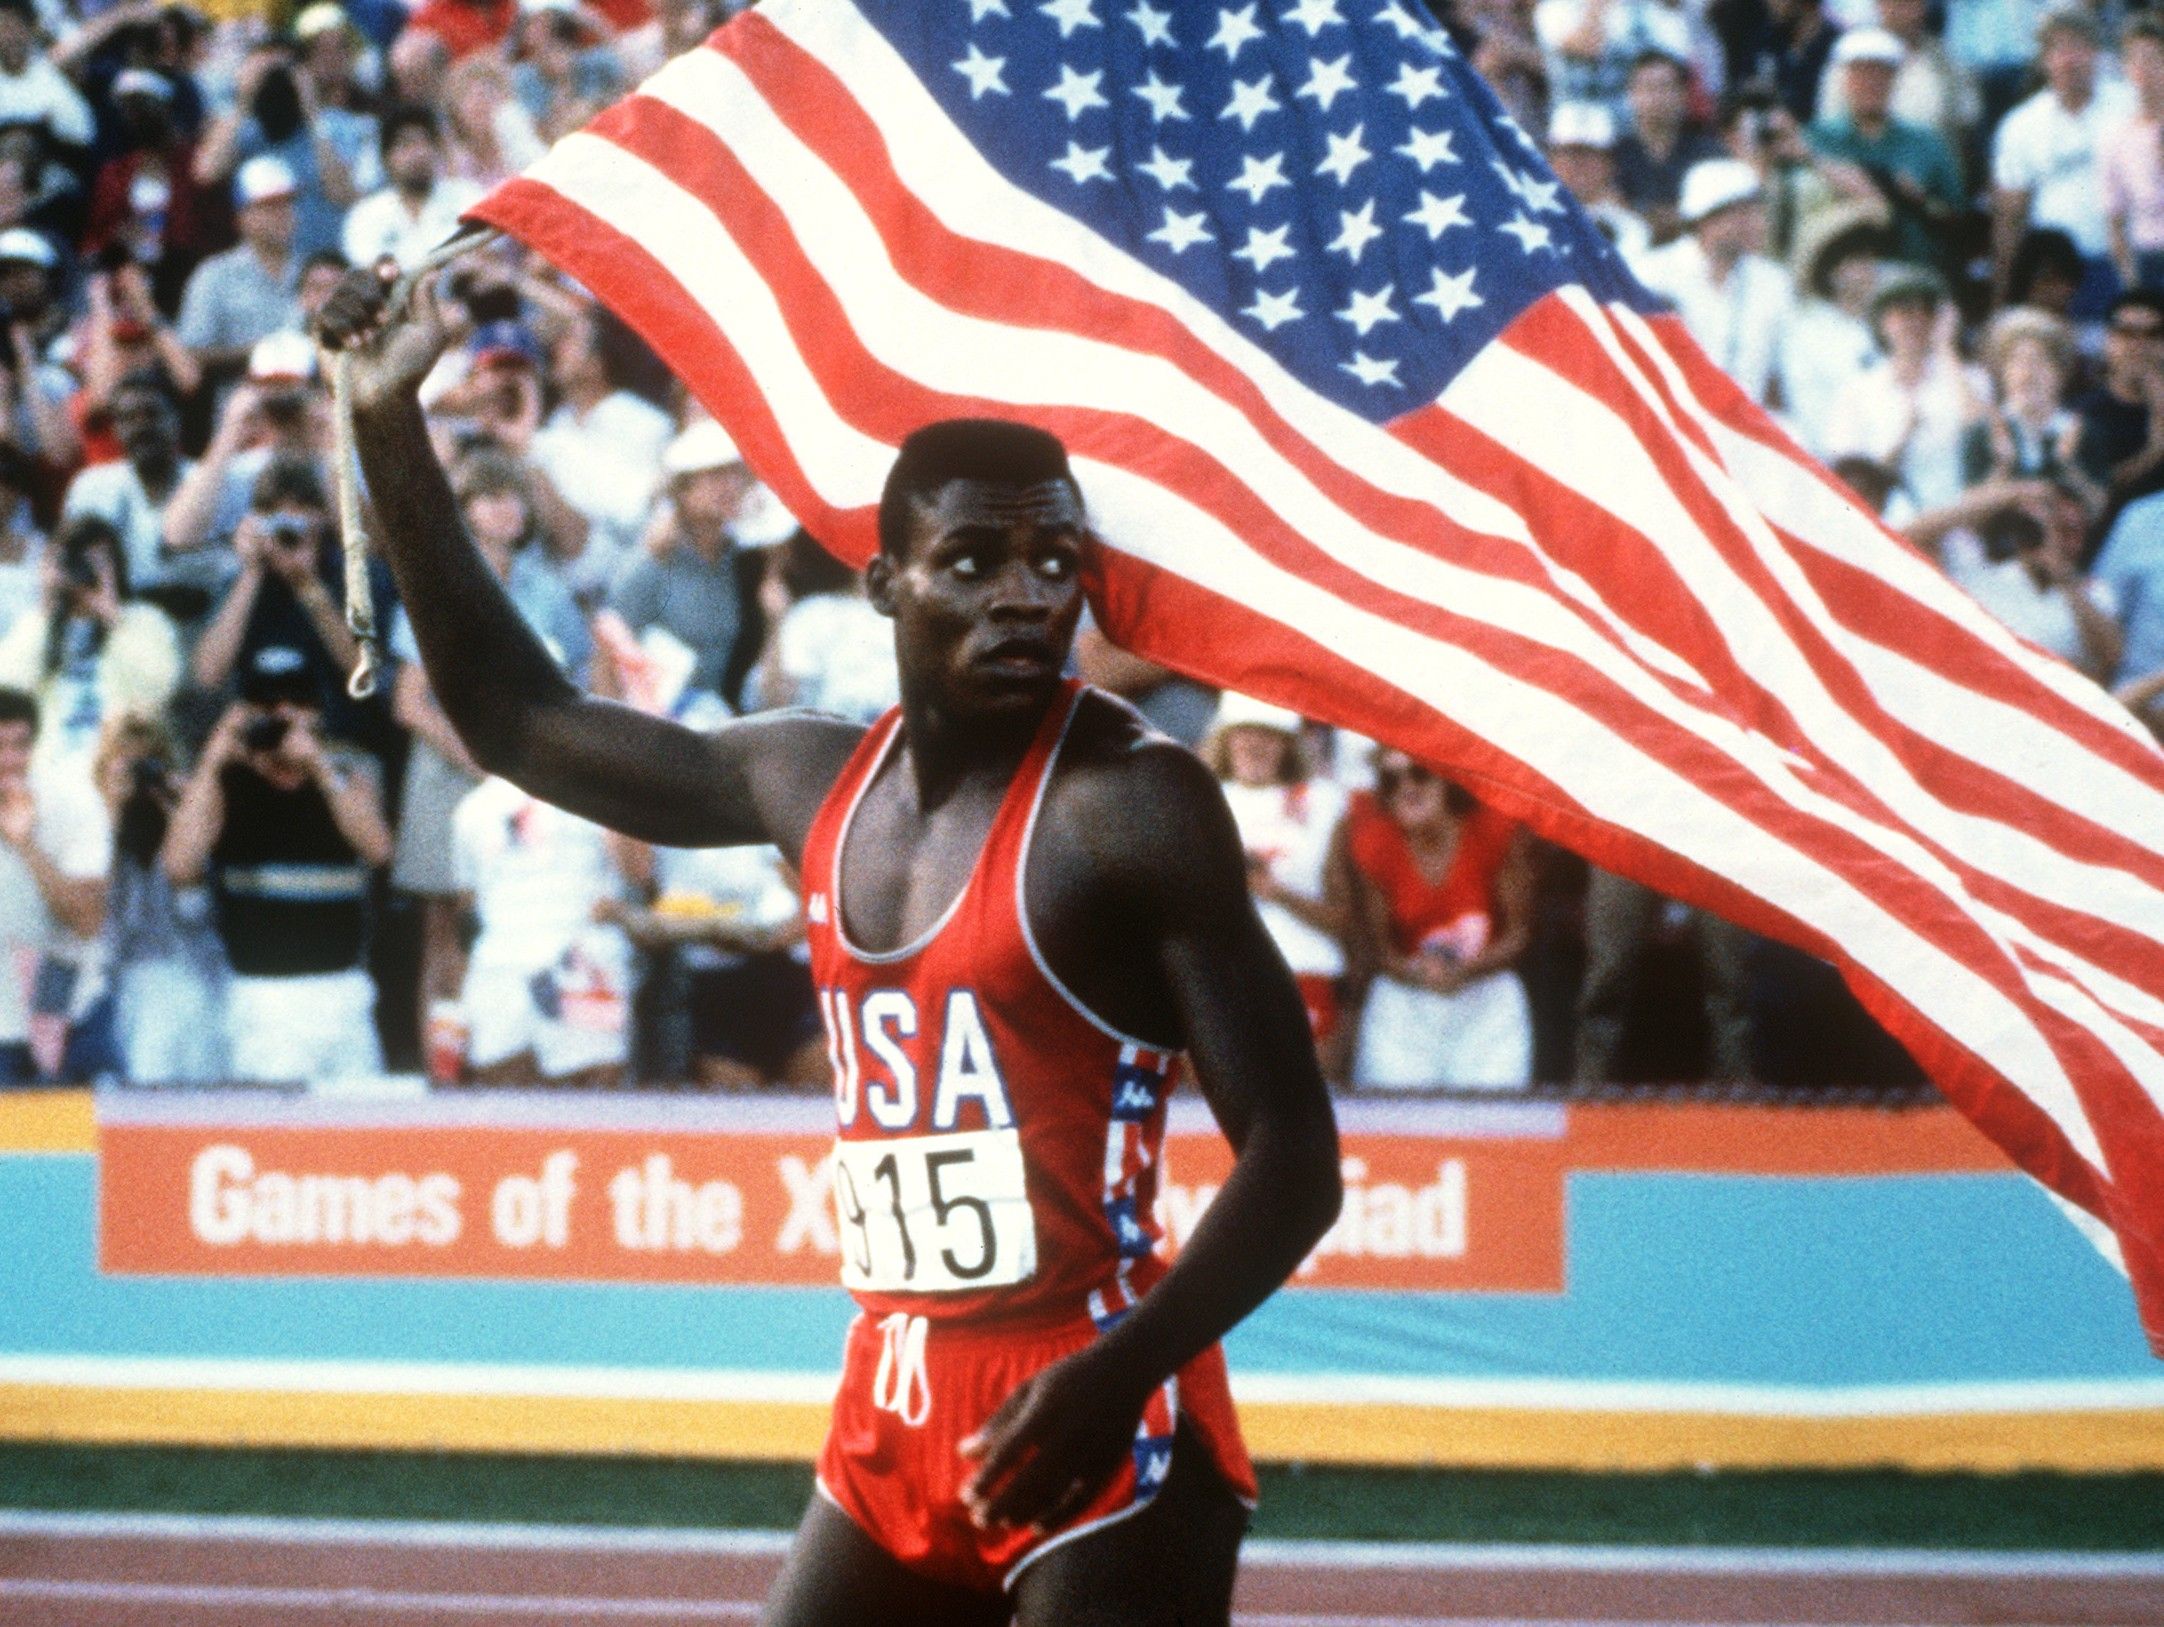 Carl Lewis looks back on LA '84 and forward to 2028 - OlympicTalk ...